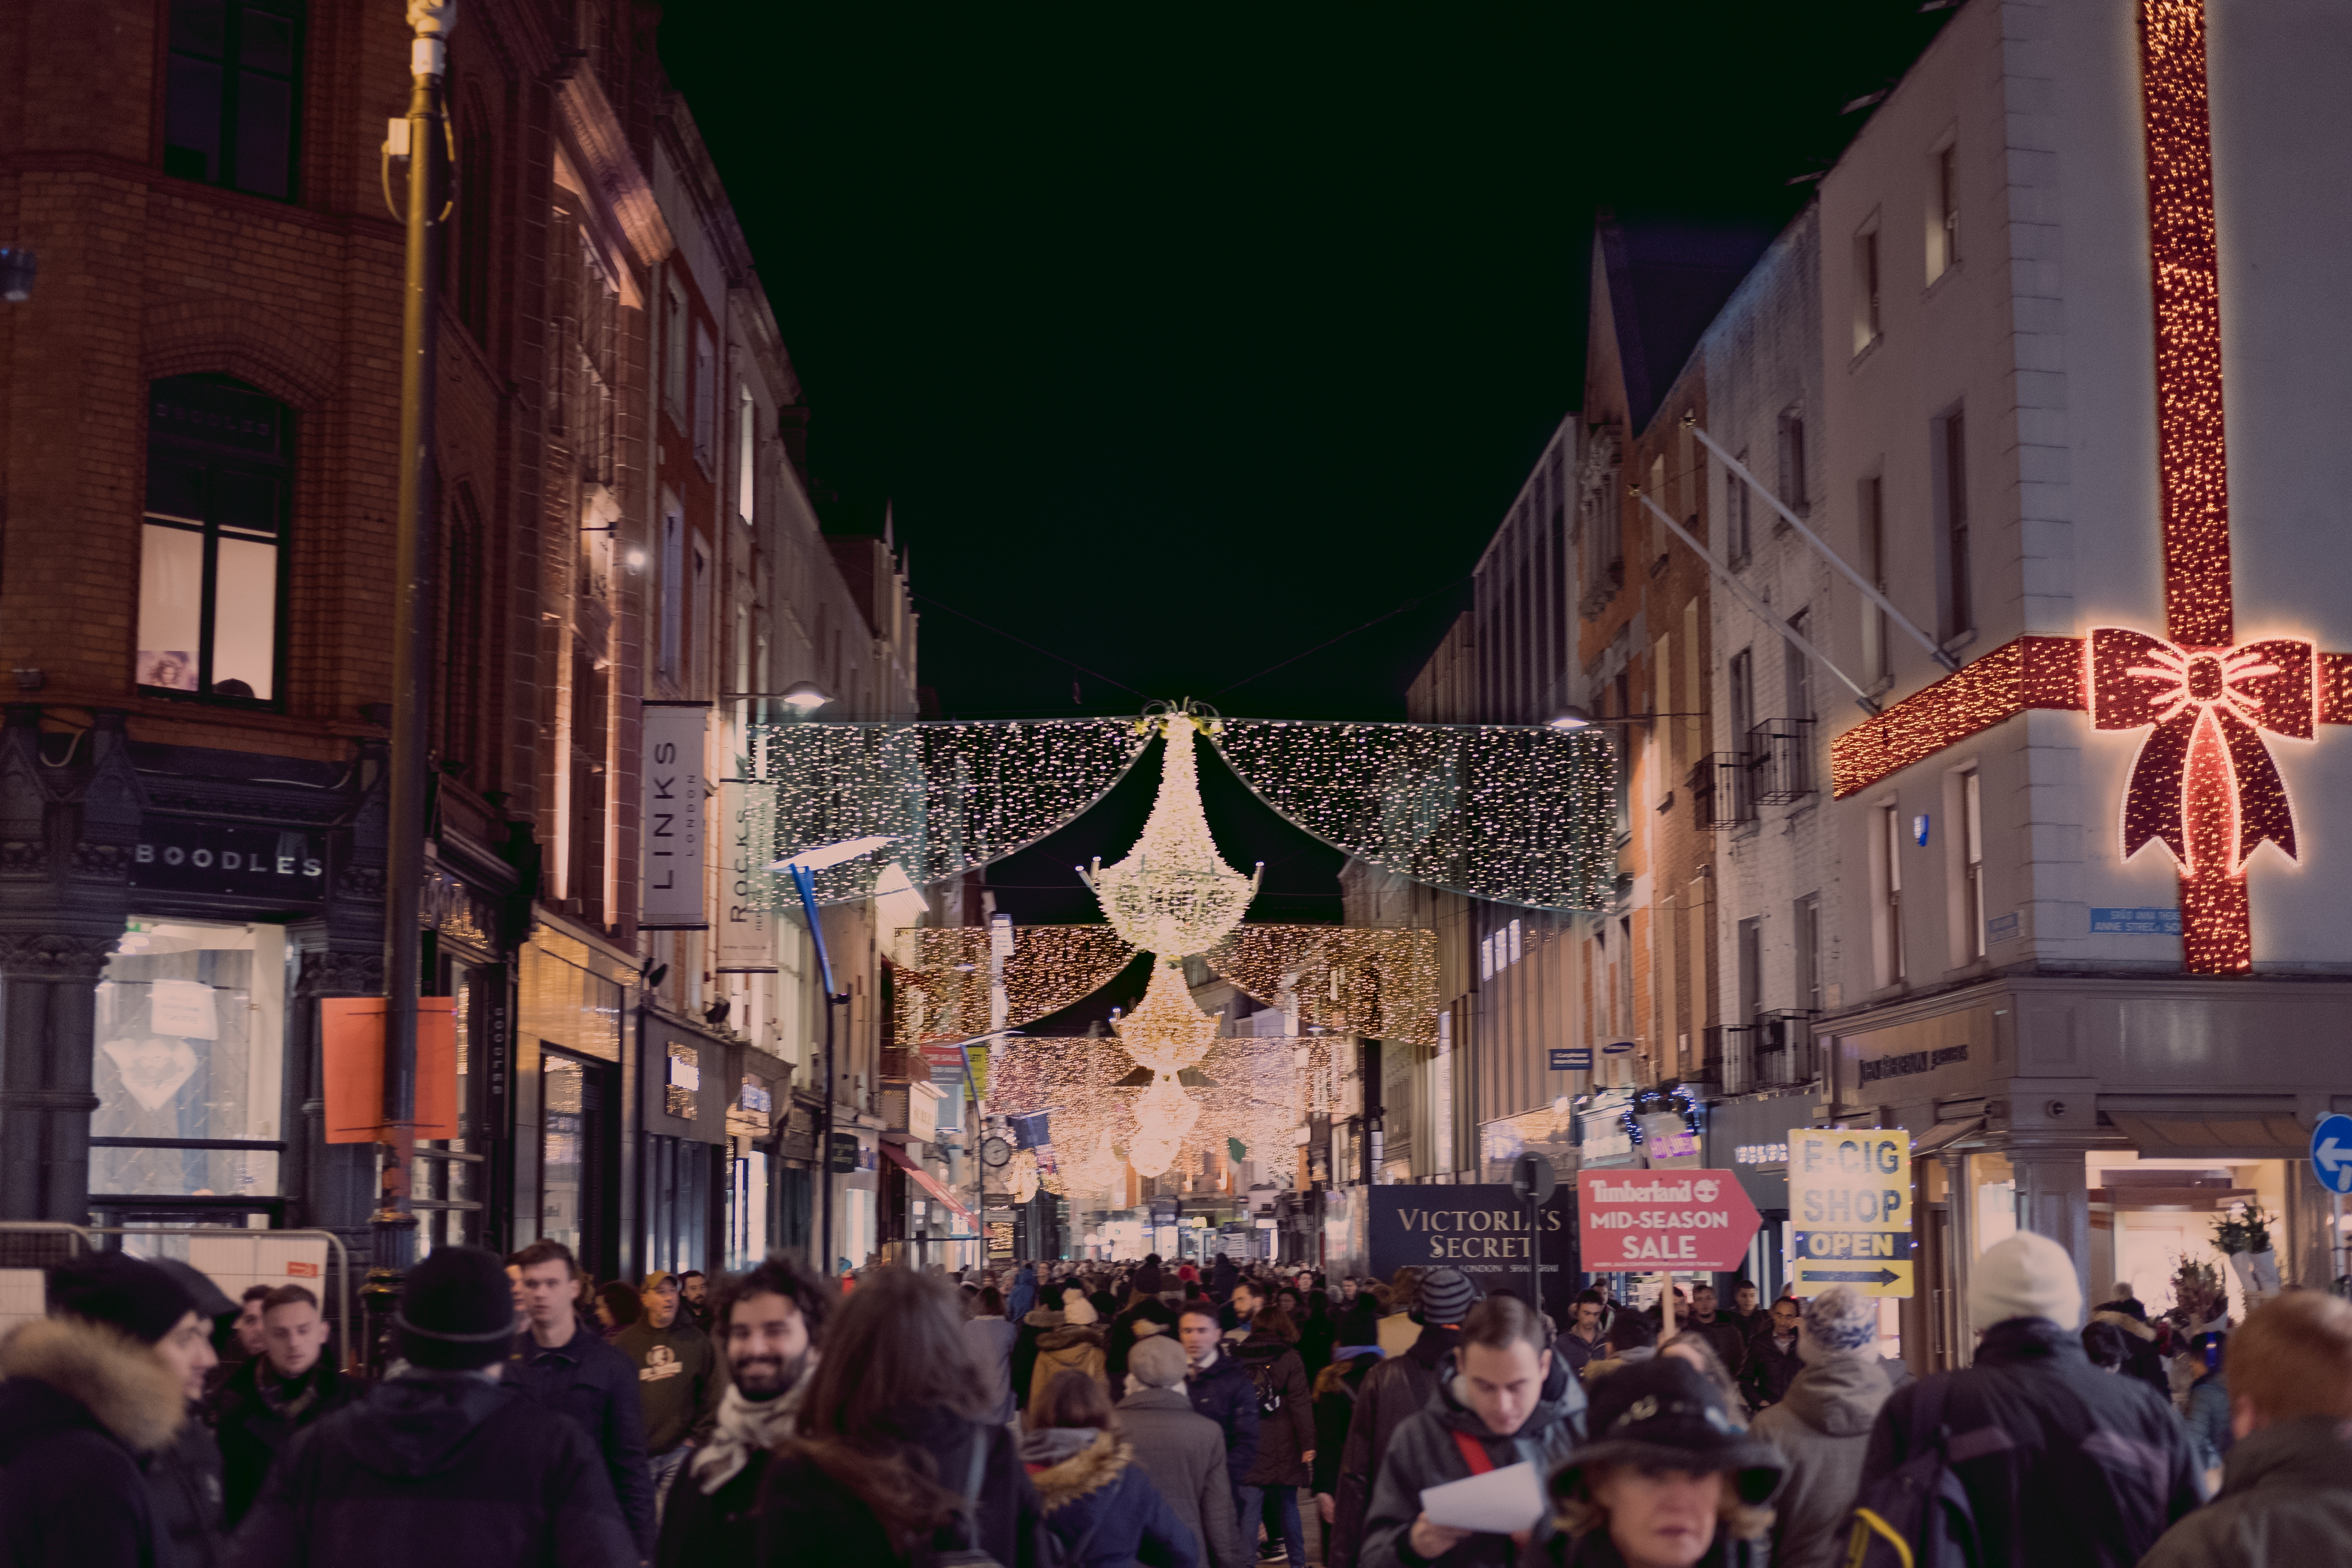 Grafton street with Christmas decorations at nighttime